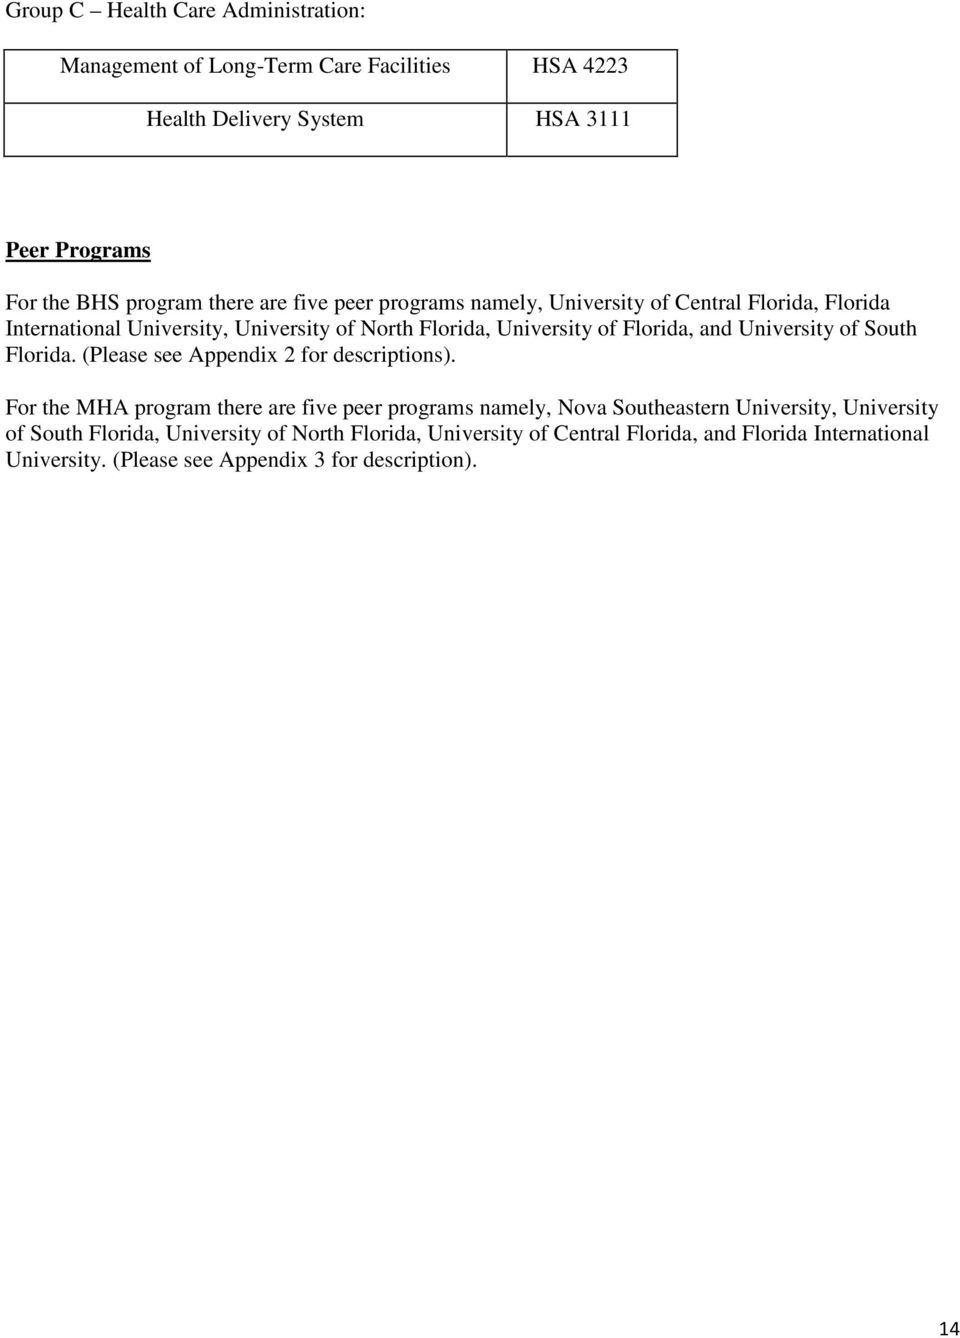 University of South Florida. (Please see Appendix 2 for descriptions).